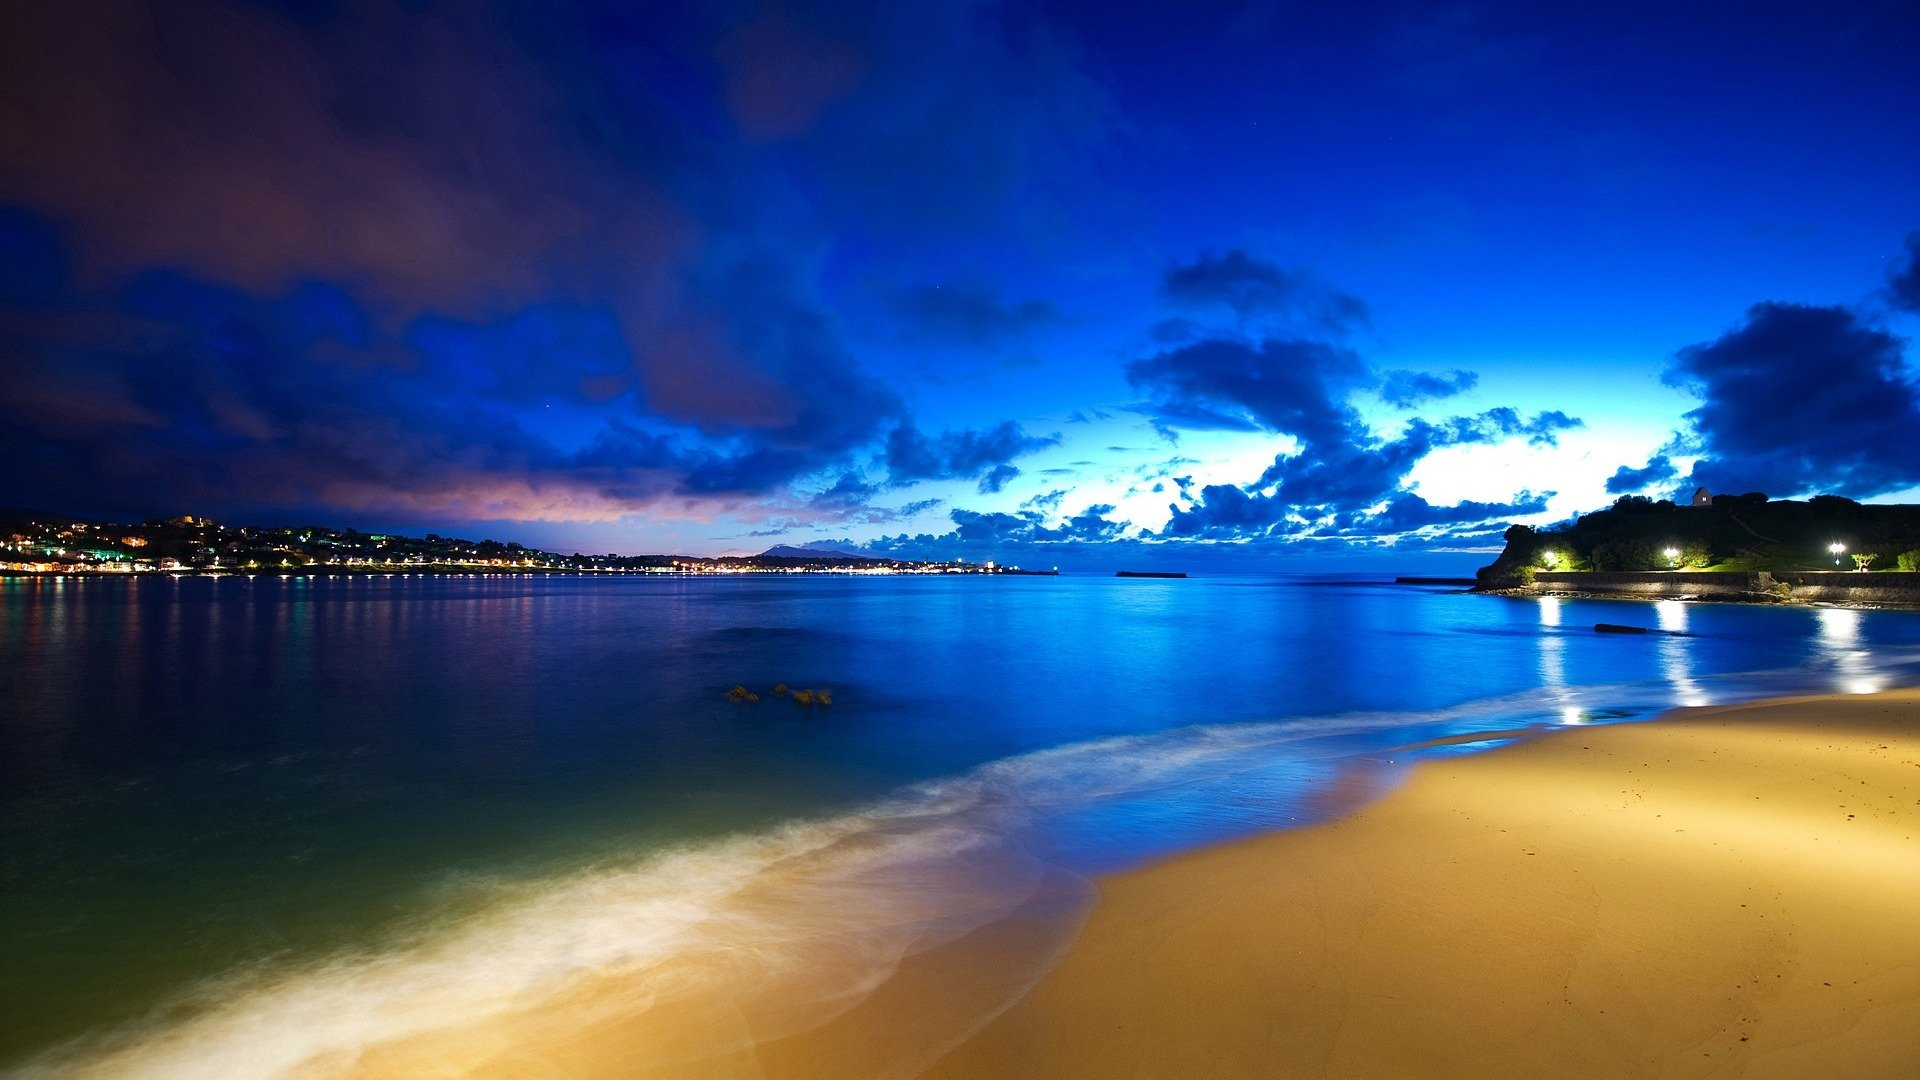 Cool Pictures Nature Beach HD Wallpaper of Beach   hdwallpaper2013com 1920x1080